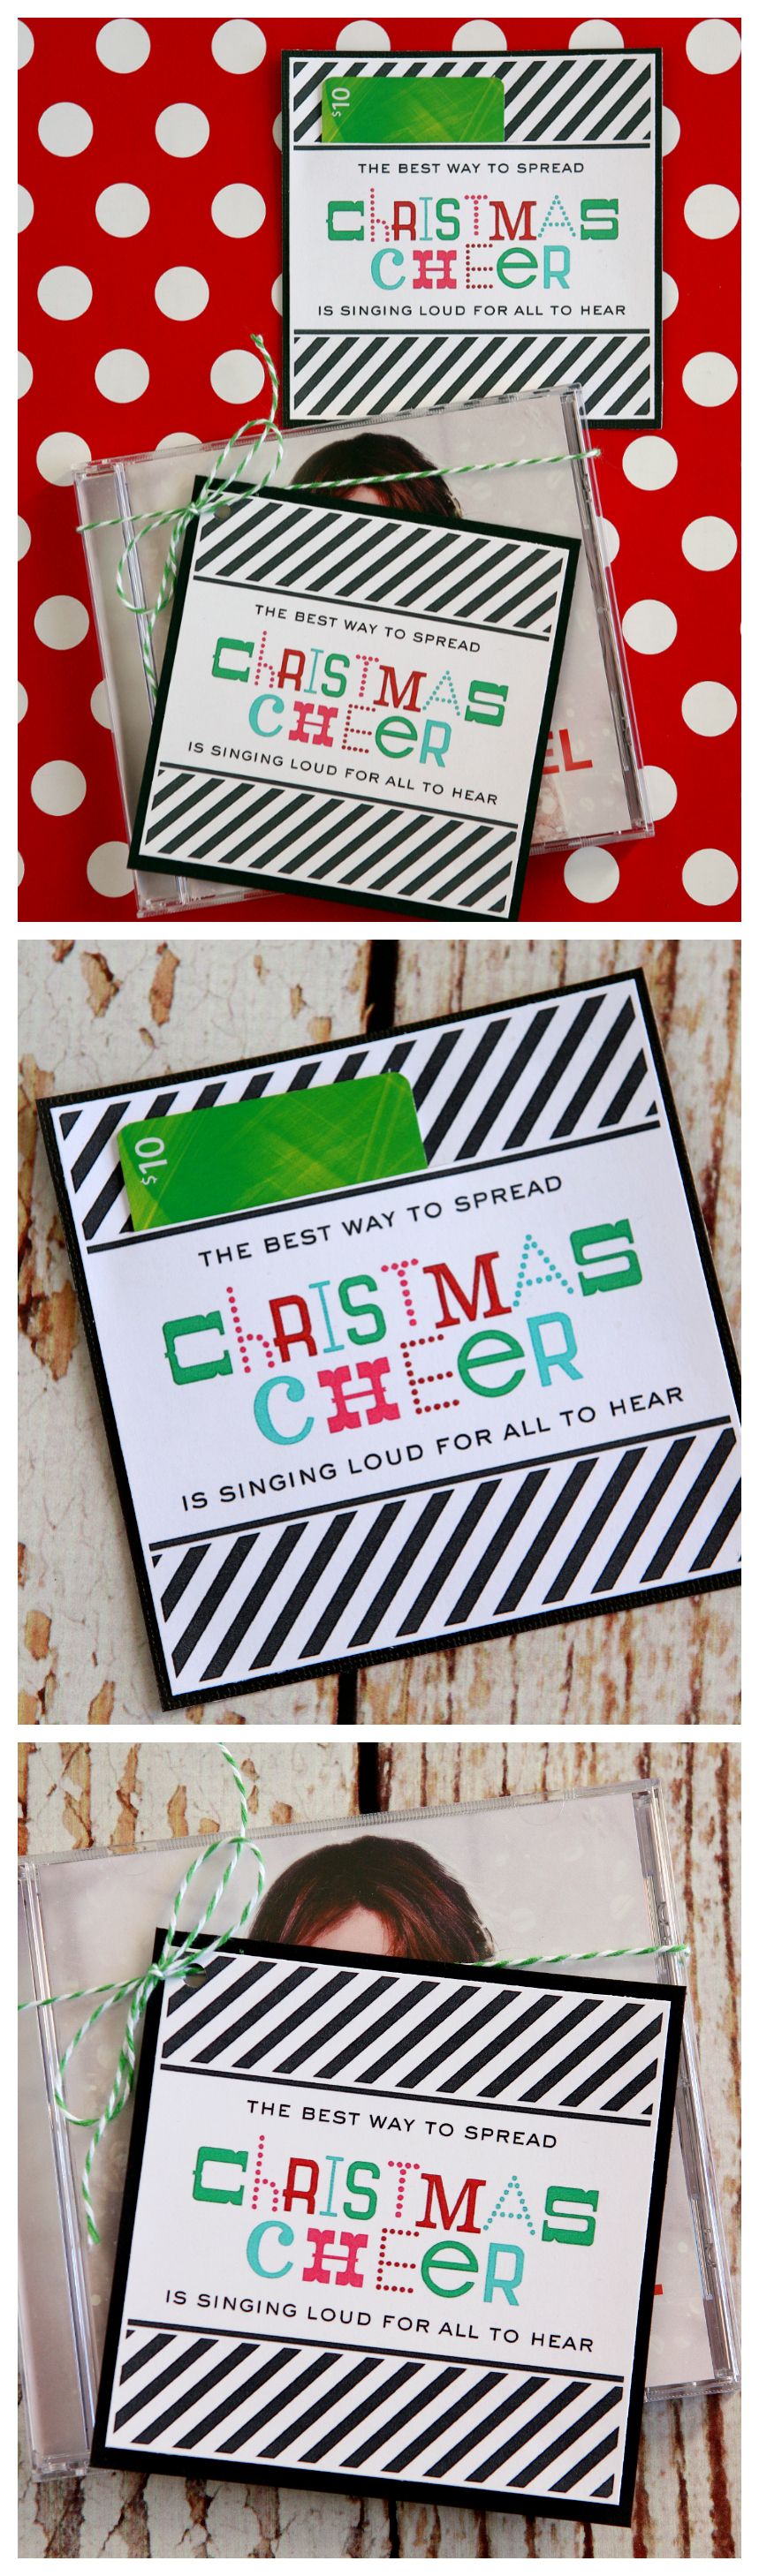 The Best Way To Spread Christmas Cheer Is Singing Loud For All To Hear. Fun Christmas Gift Idea - includes the free printable tag!